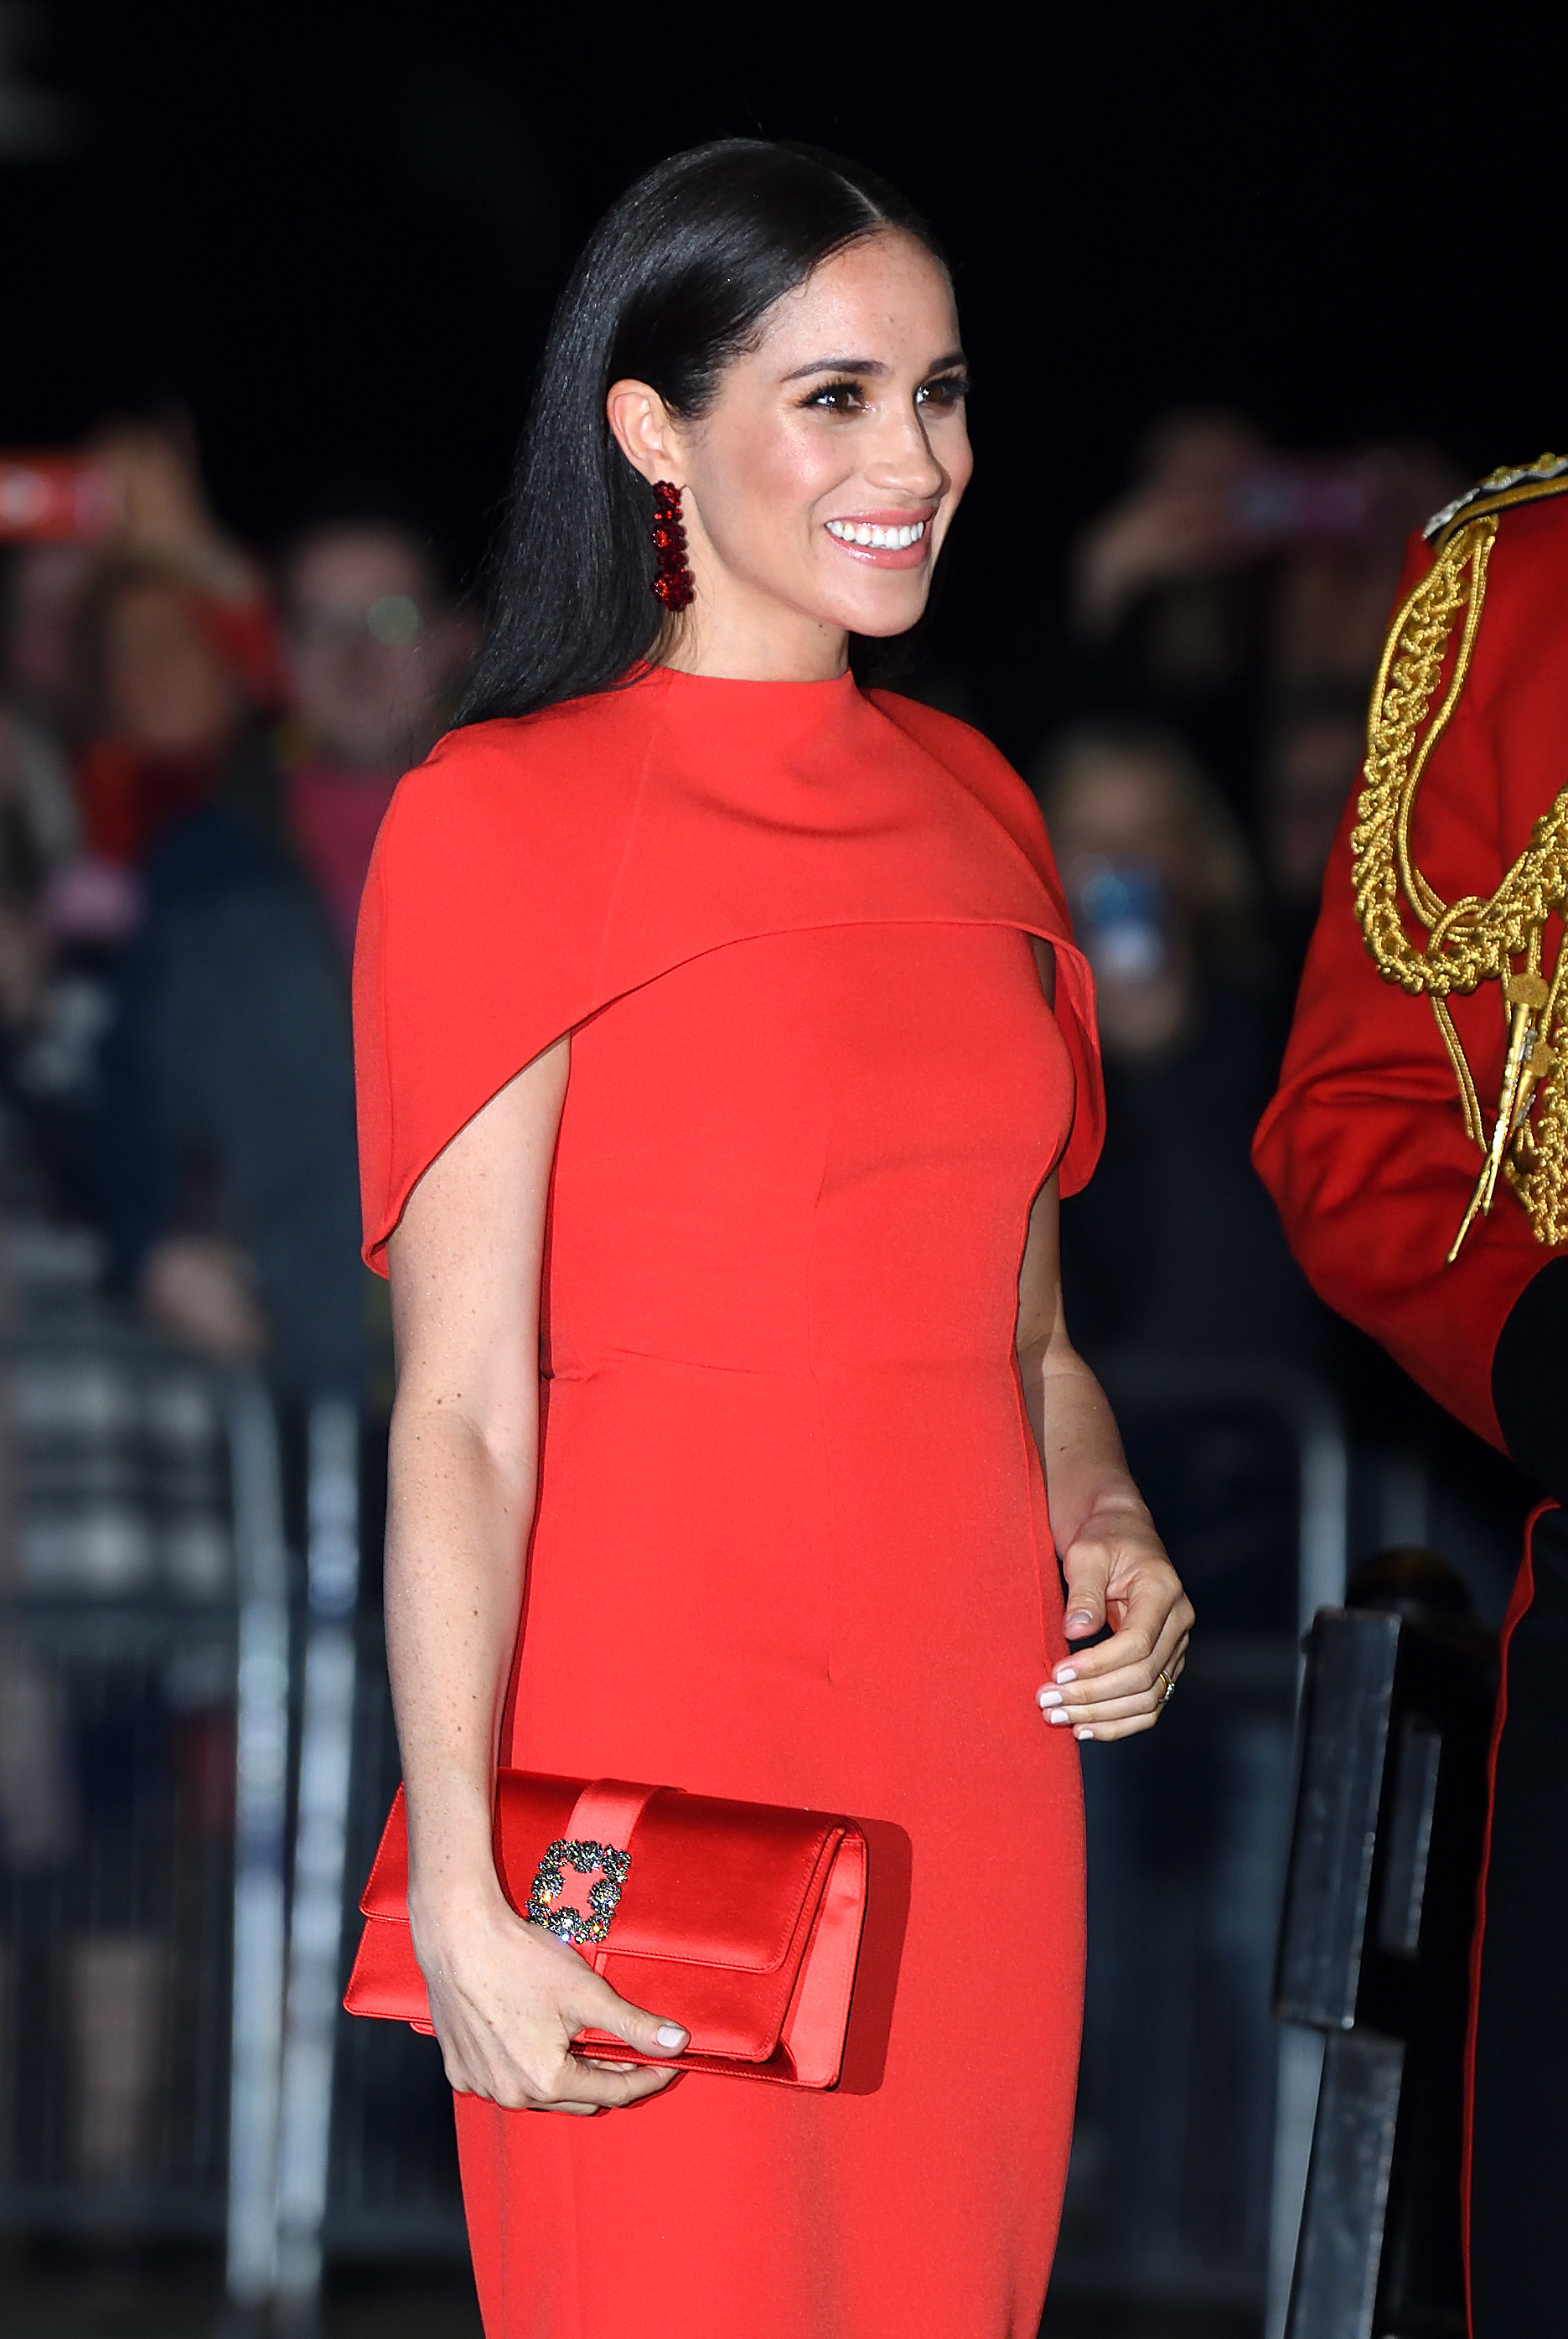 Meghan Markle at Royal Albert Hall in London in 2020